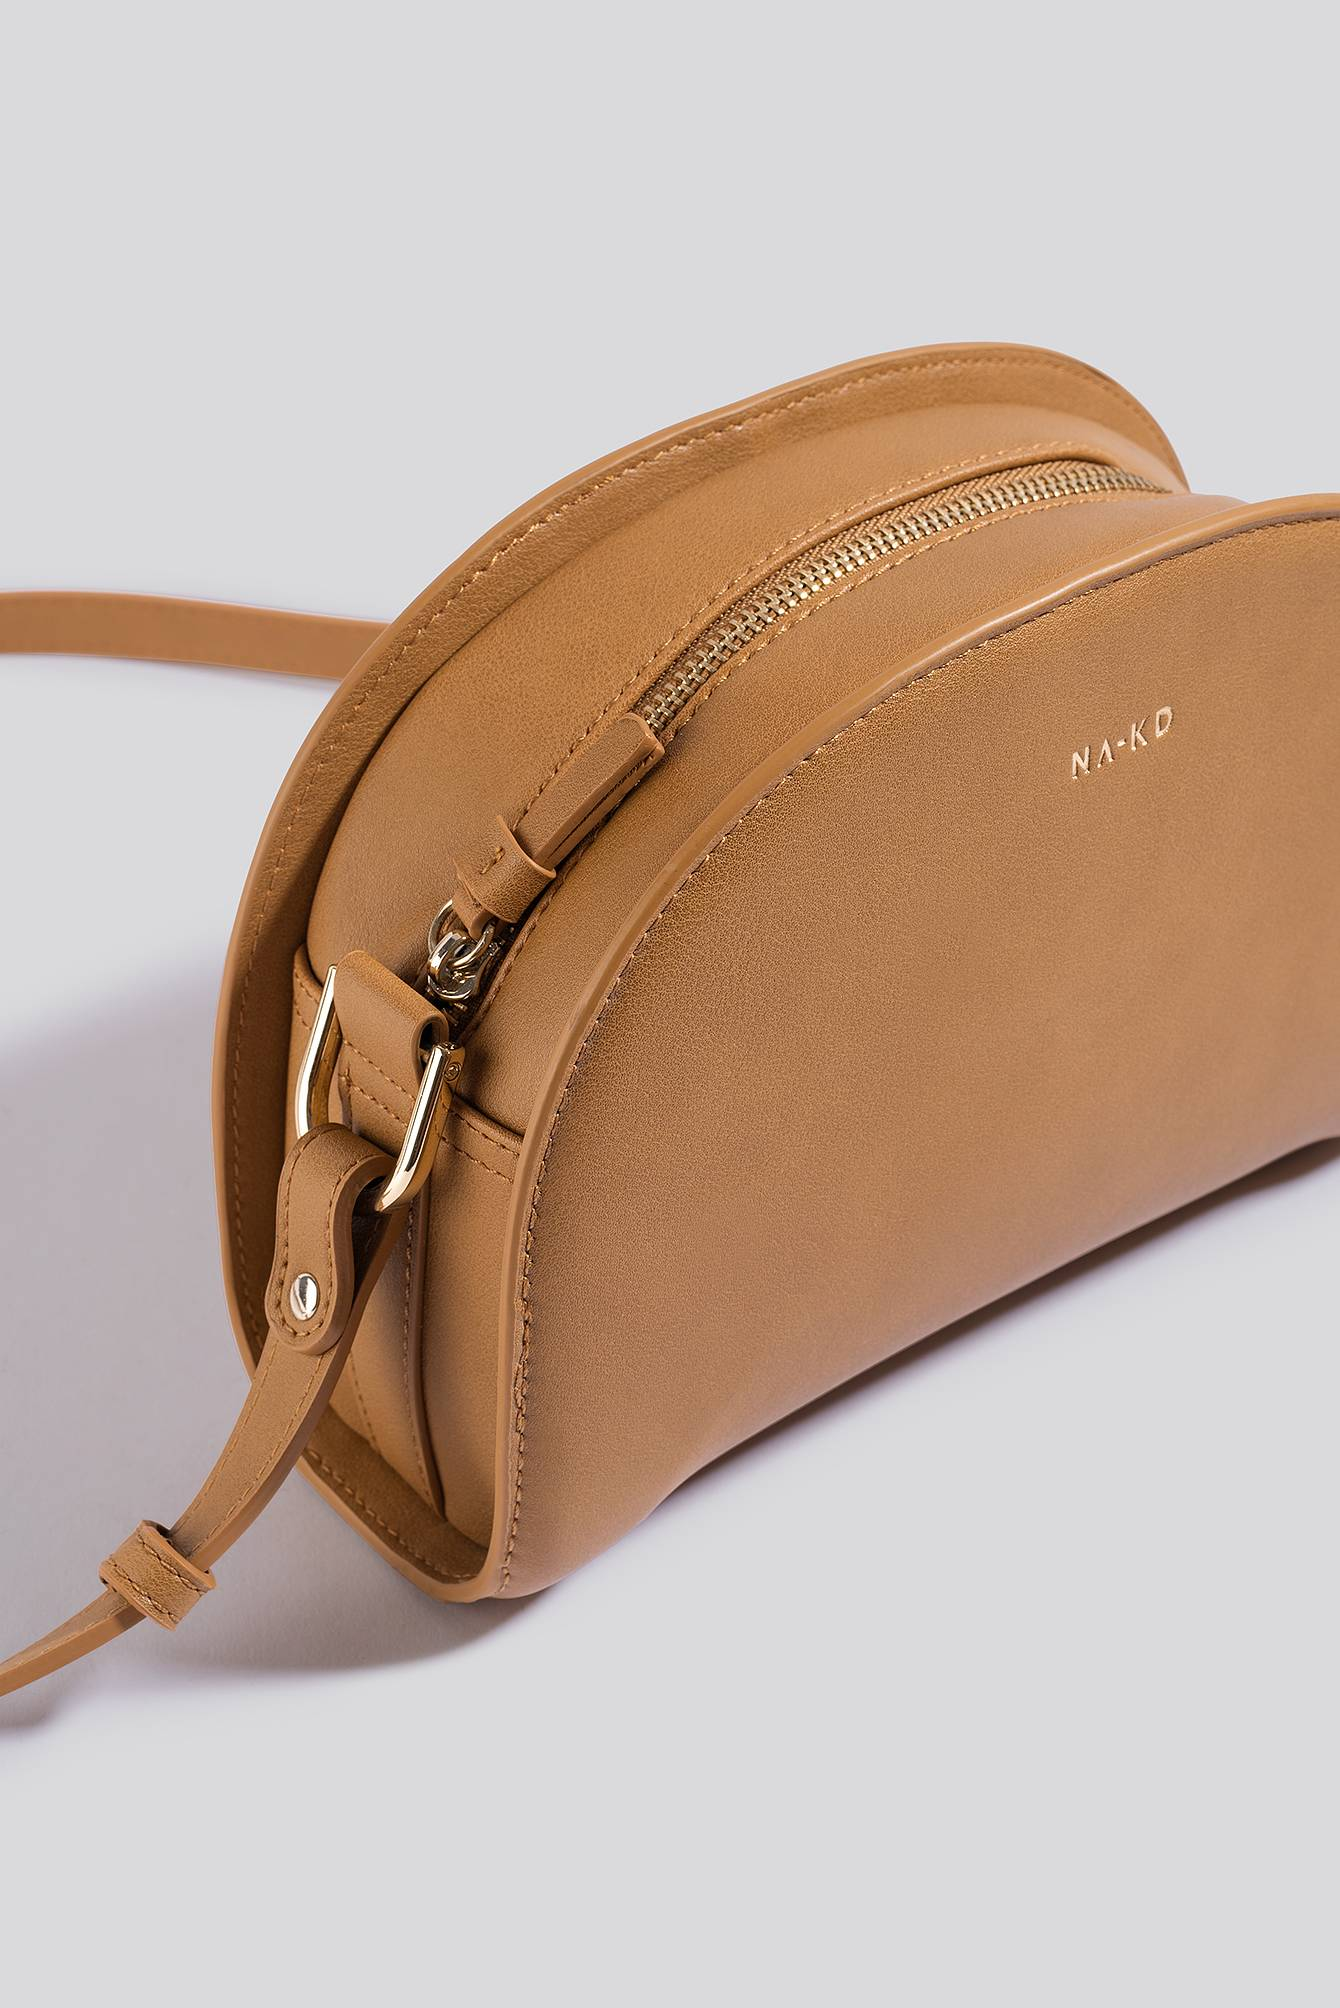 NA-KD Accessories Half Moon Crossbody Bag - Brown  - Size: One Size